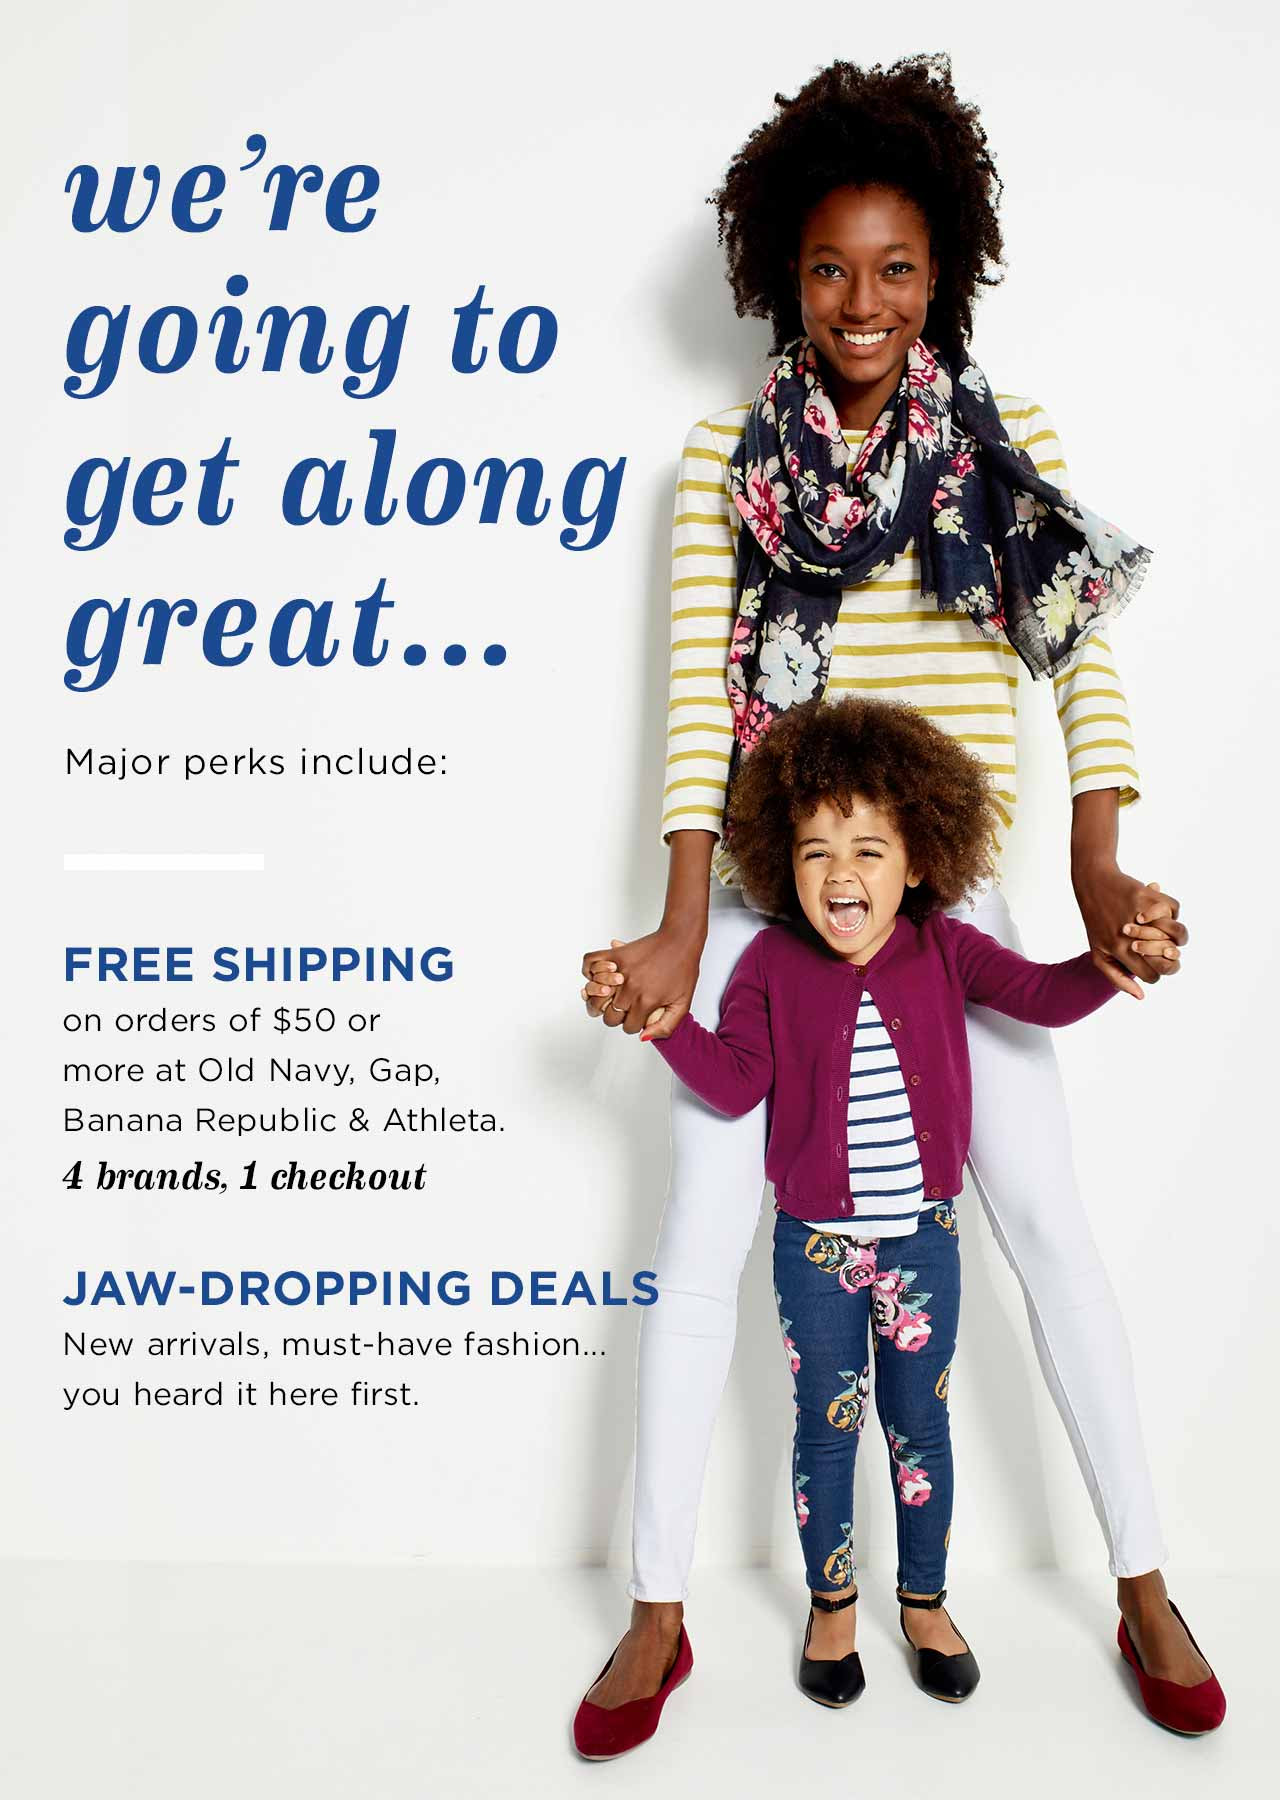 we're going to get along great... | FREE SHIPPING | JAW-DROPPING DEALS